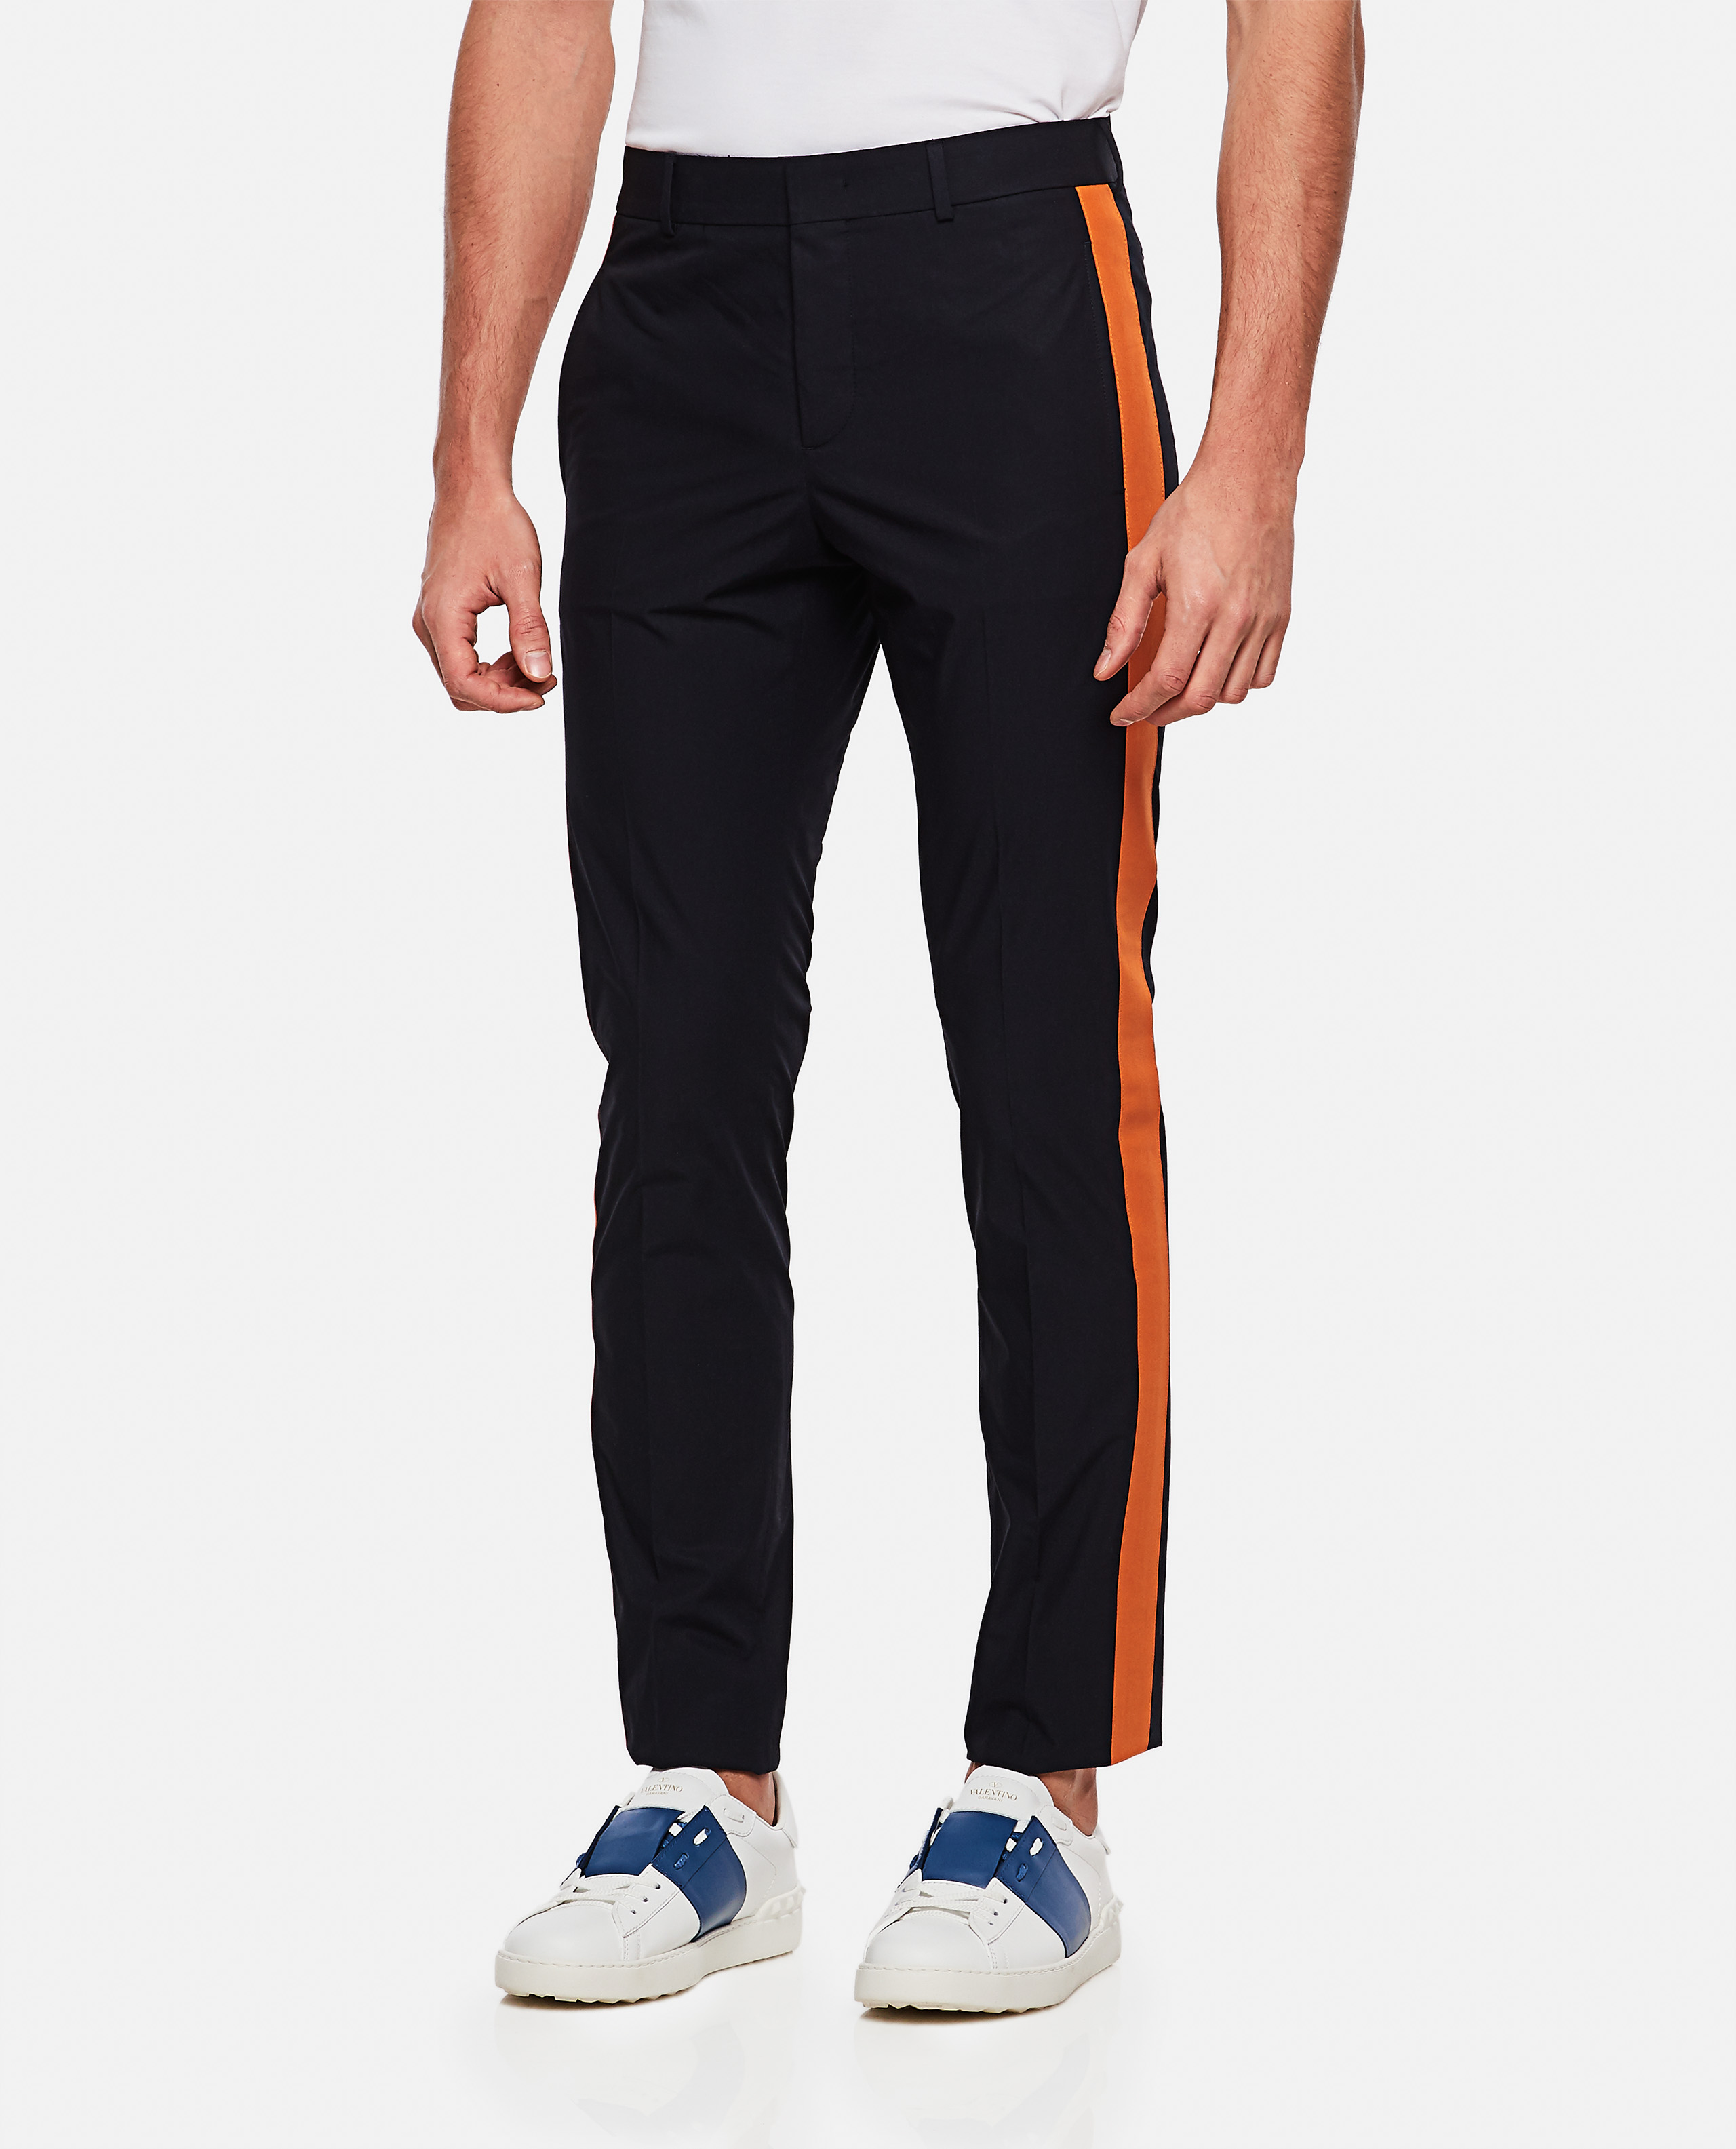 Pants with contrasting panels